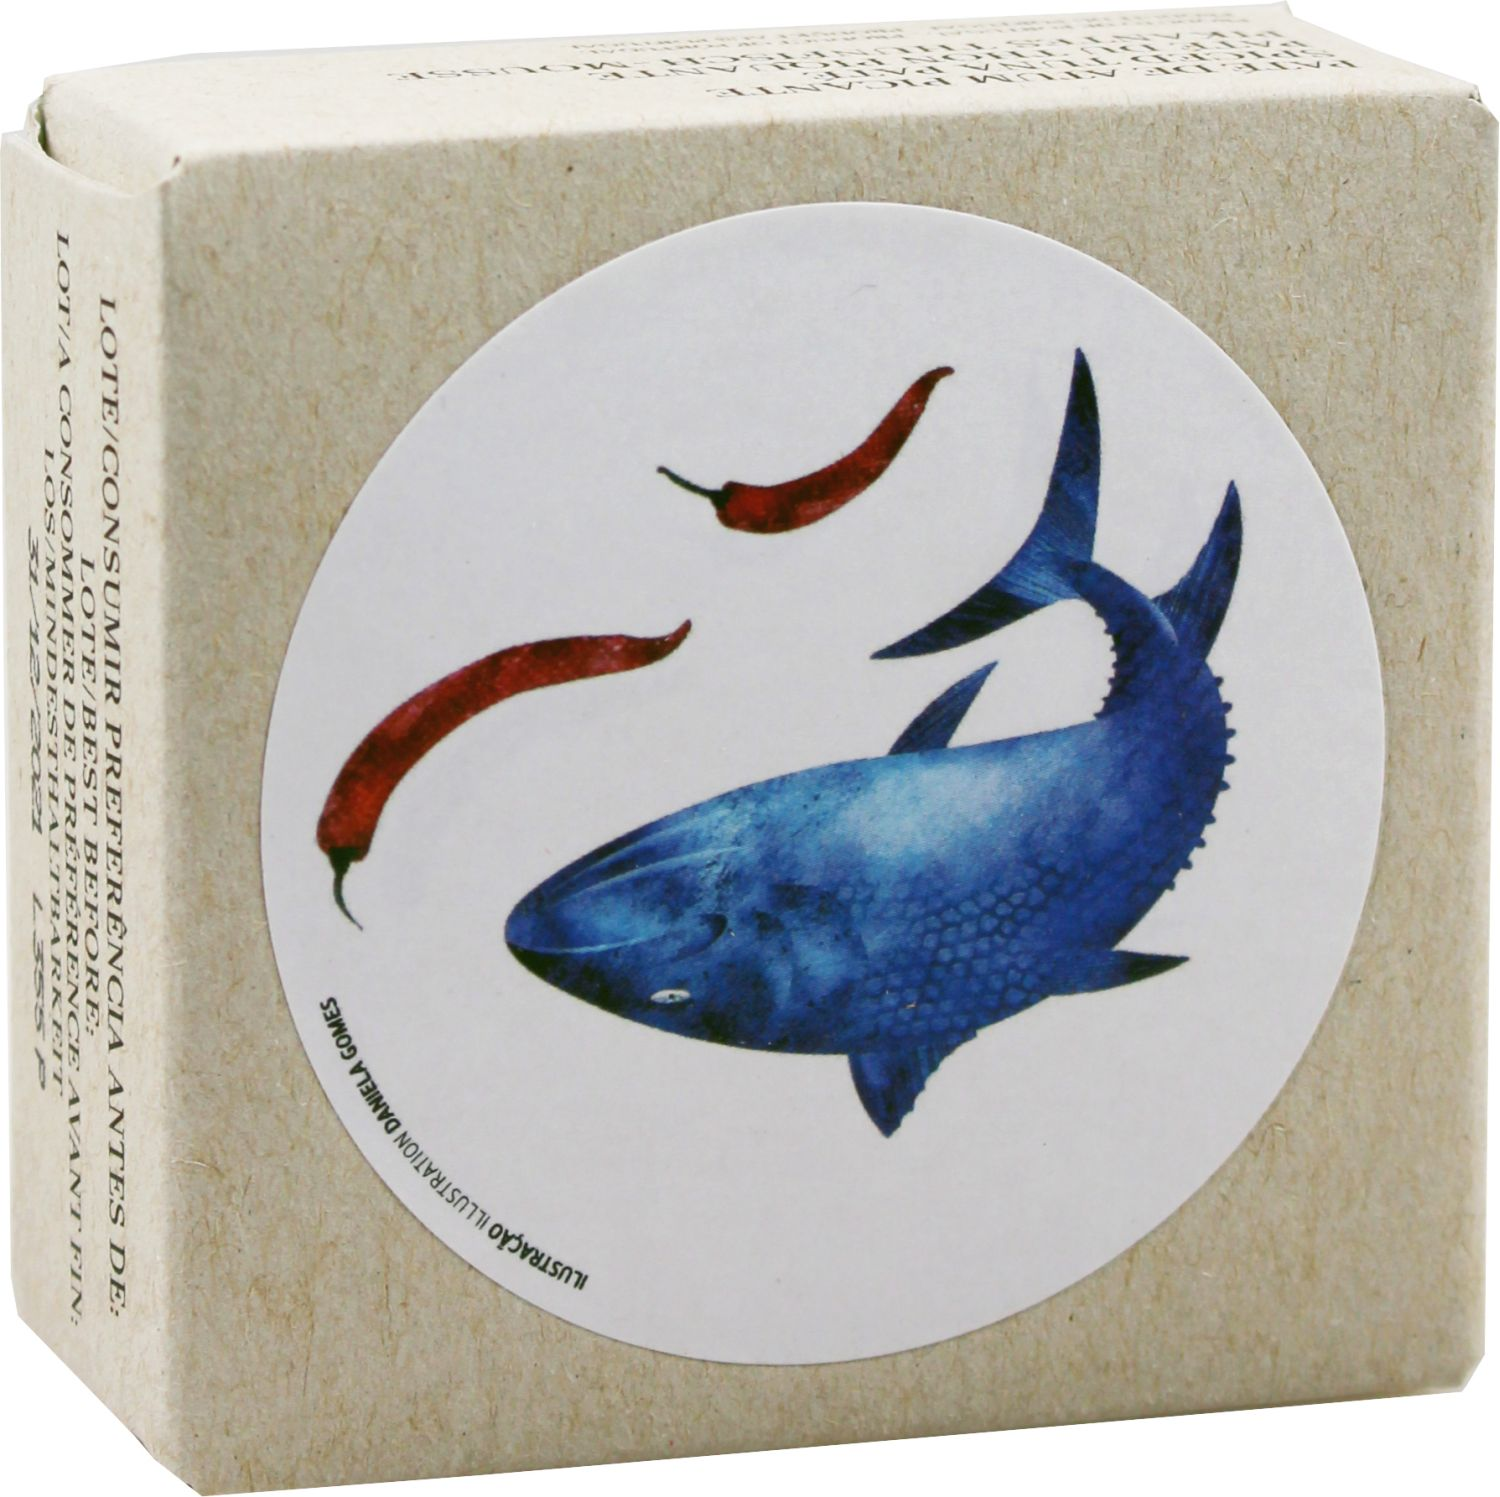 Thunfisch Mousse Pikant - Jose Gourmet 75g - Portugal